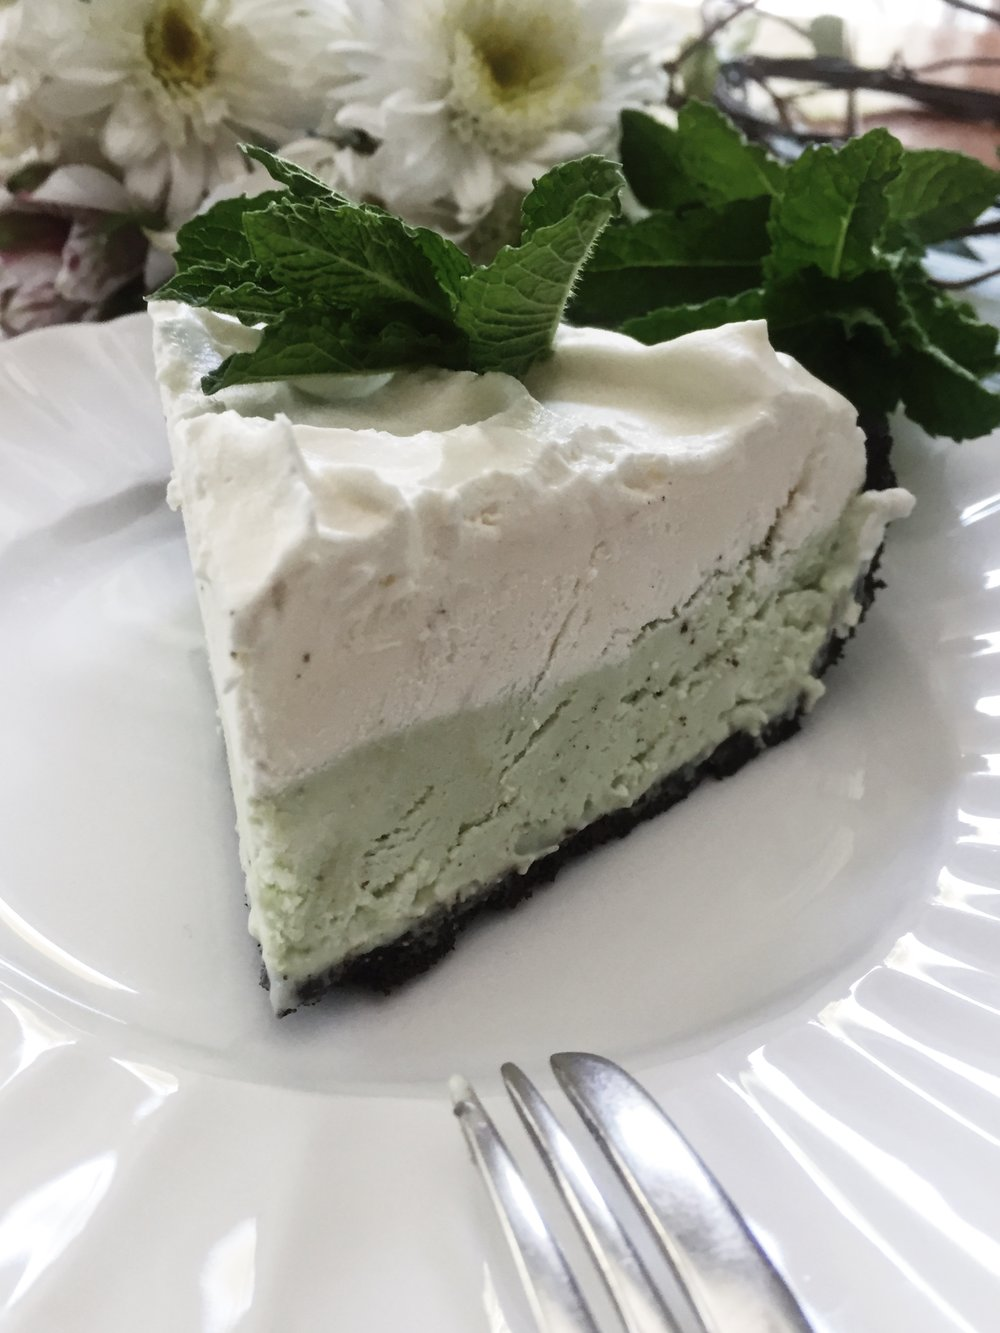 oandystudio-recipe-frozen-grasshopper-pie-white-chocolate-make-ahead-holiday-image.JPG